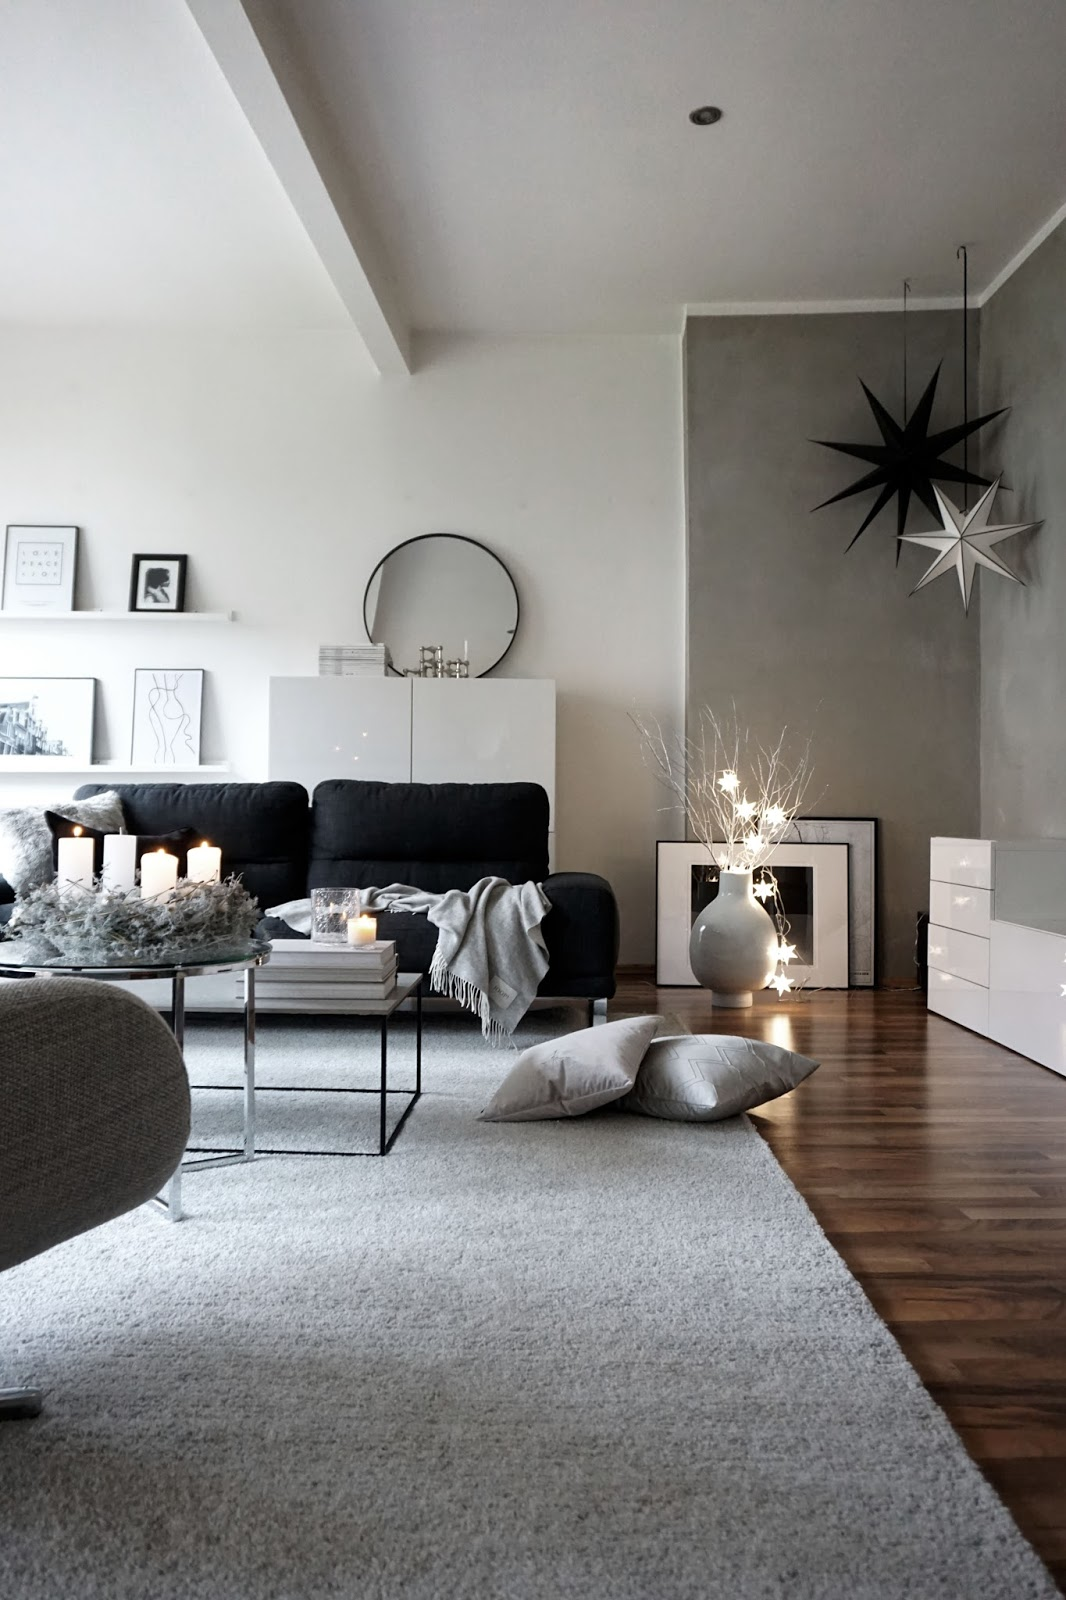 adventszauber im hause stilreich mit joop living s t i l r e i c h blog. Black Bedroom Furniture Sets. Home Design Ideas